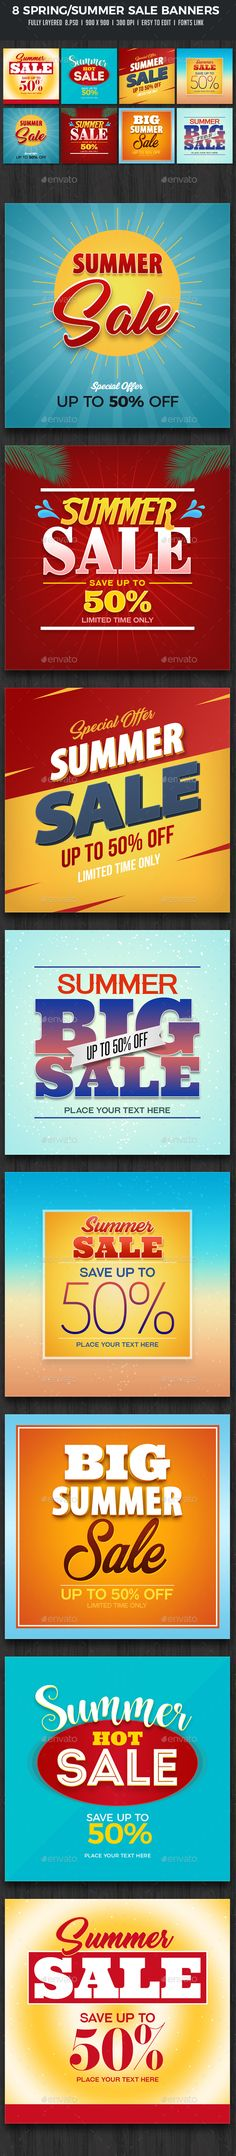 8 Spring Summer Sale Banners — Photoshop PSD #deal #spring sale • Download ➝ https://graphicriver.net/item/8-spring-summer-sale-banners/19505339?ref=pxcr